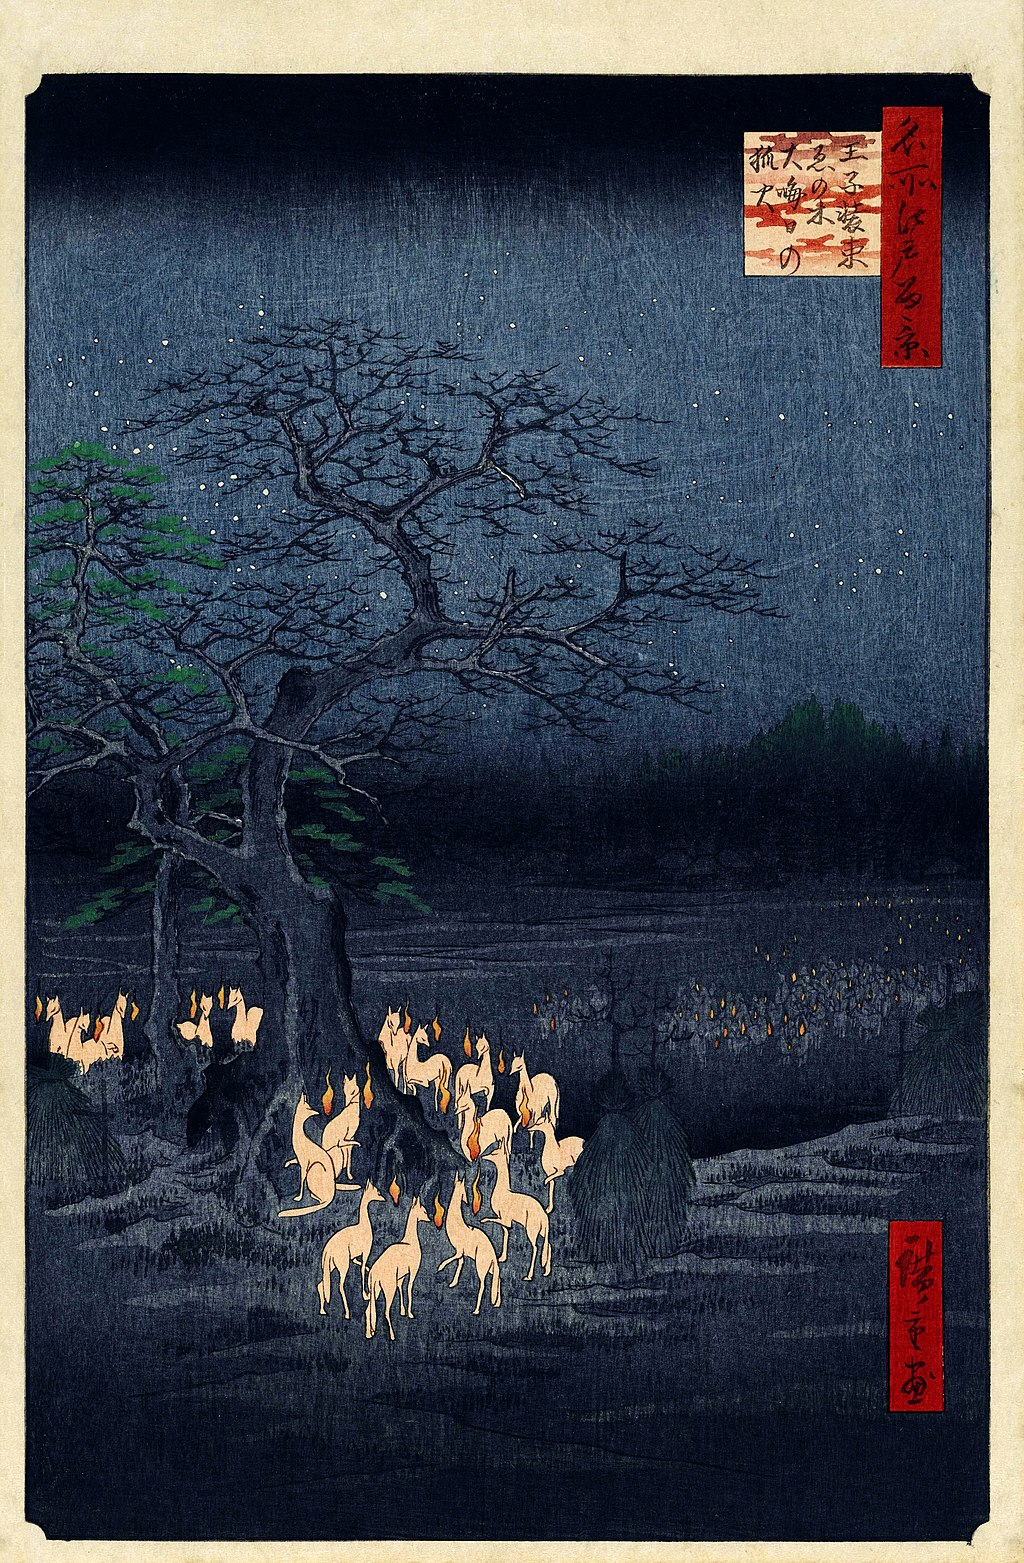 Hiroshige, New Year's Eve foxfires at the changing tree, Oji, 1857